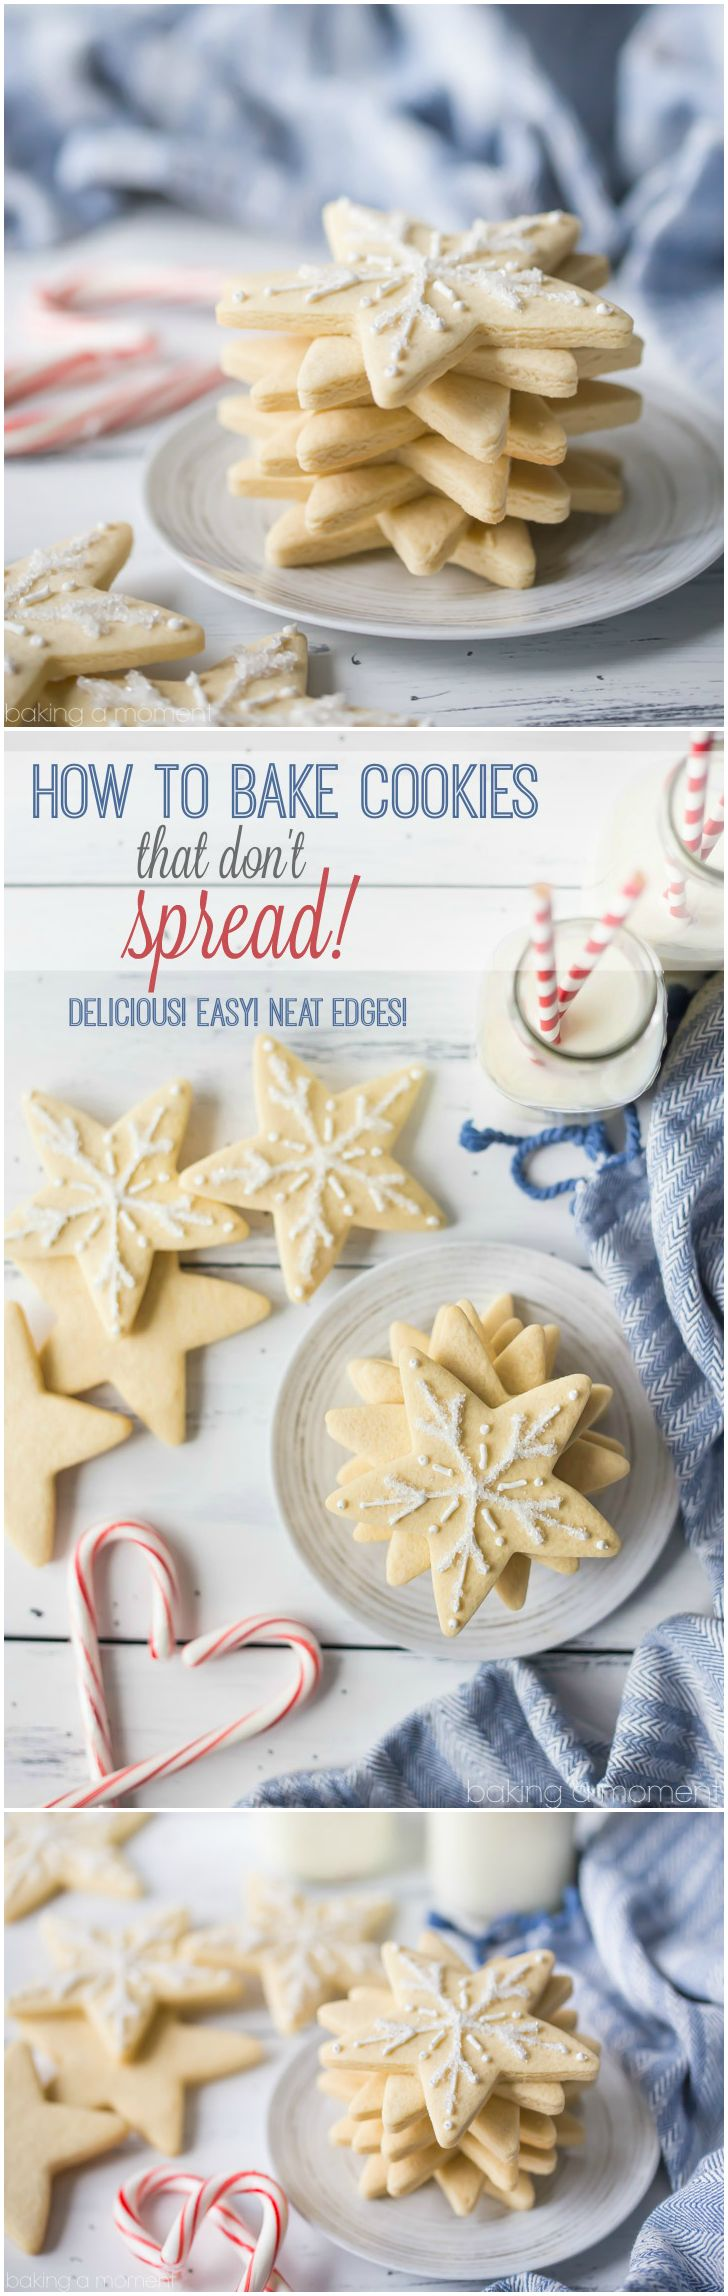 Baking A Moment How to Bake (Easy! and Delicious!) Cutout Cookies with Neat Edges - Baking A Moment